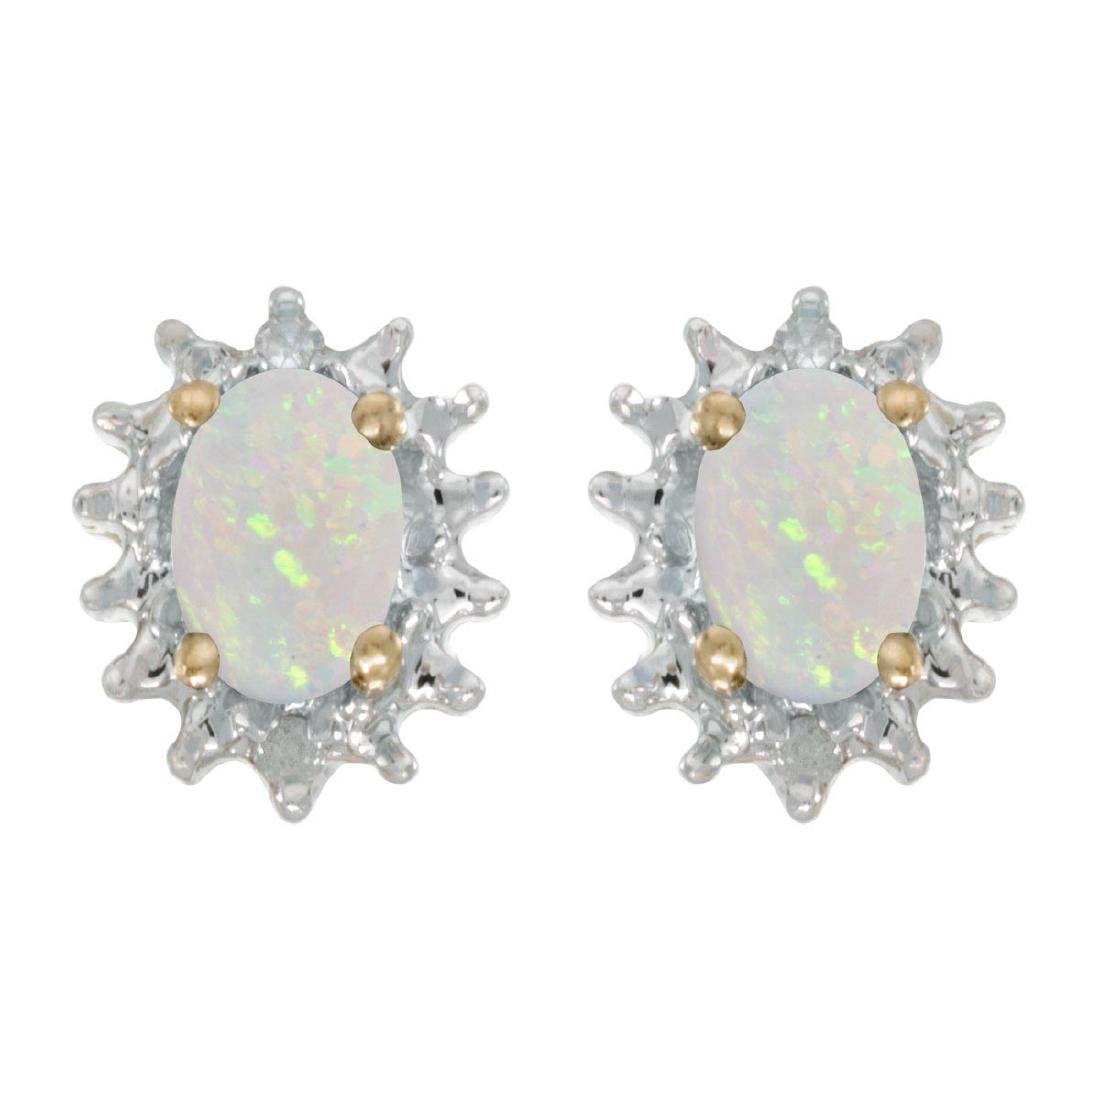 Certified 14k Yellow Gold Oval Opal And Diamond Earring